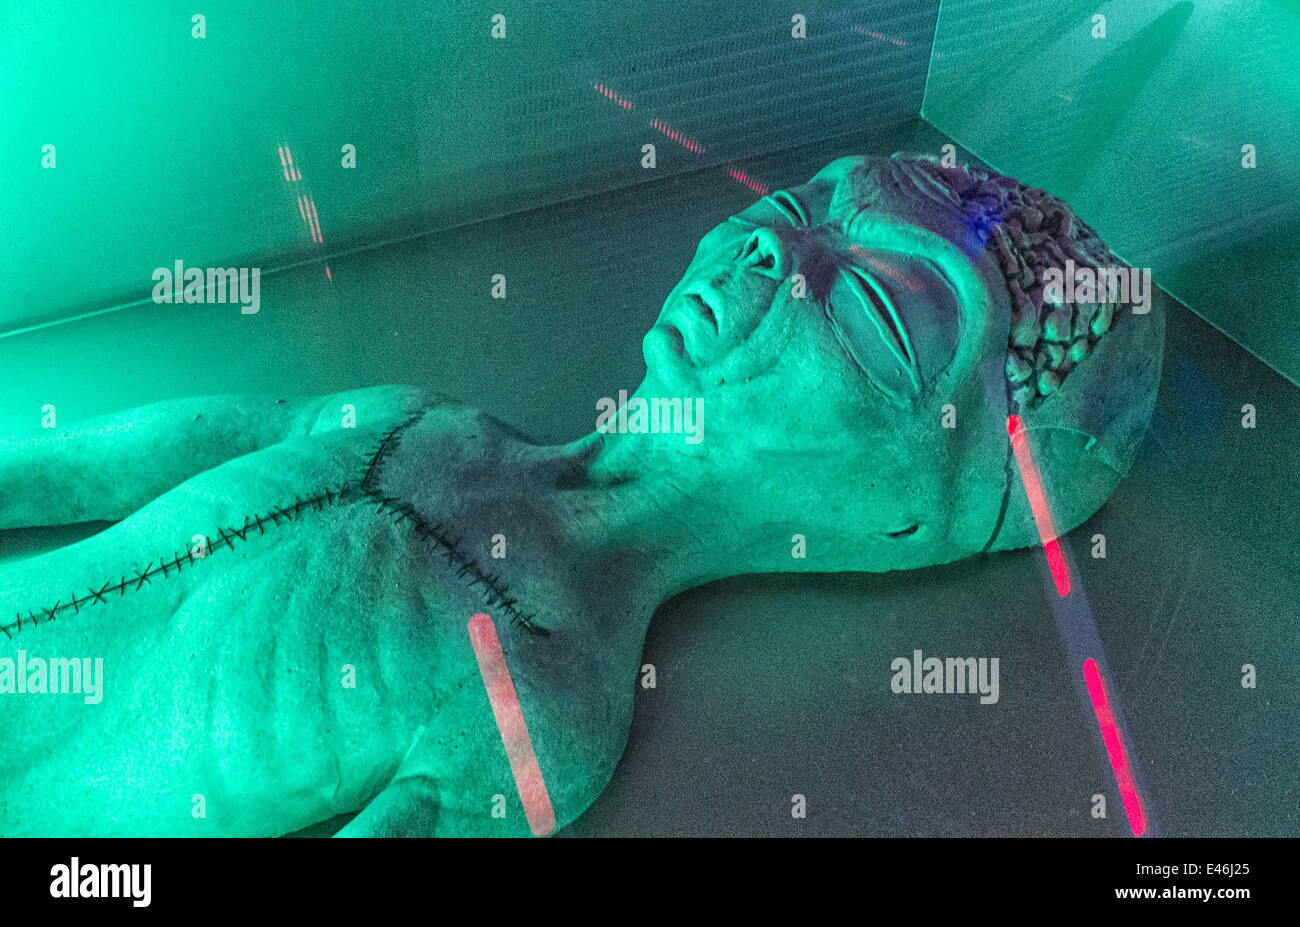 An Alien Autopsy At UFO Attraction In Myrtle Beach South Carolina